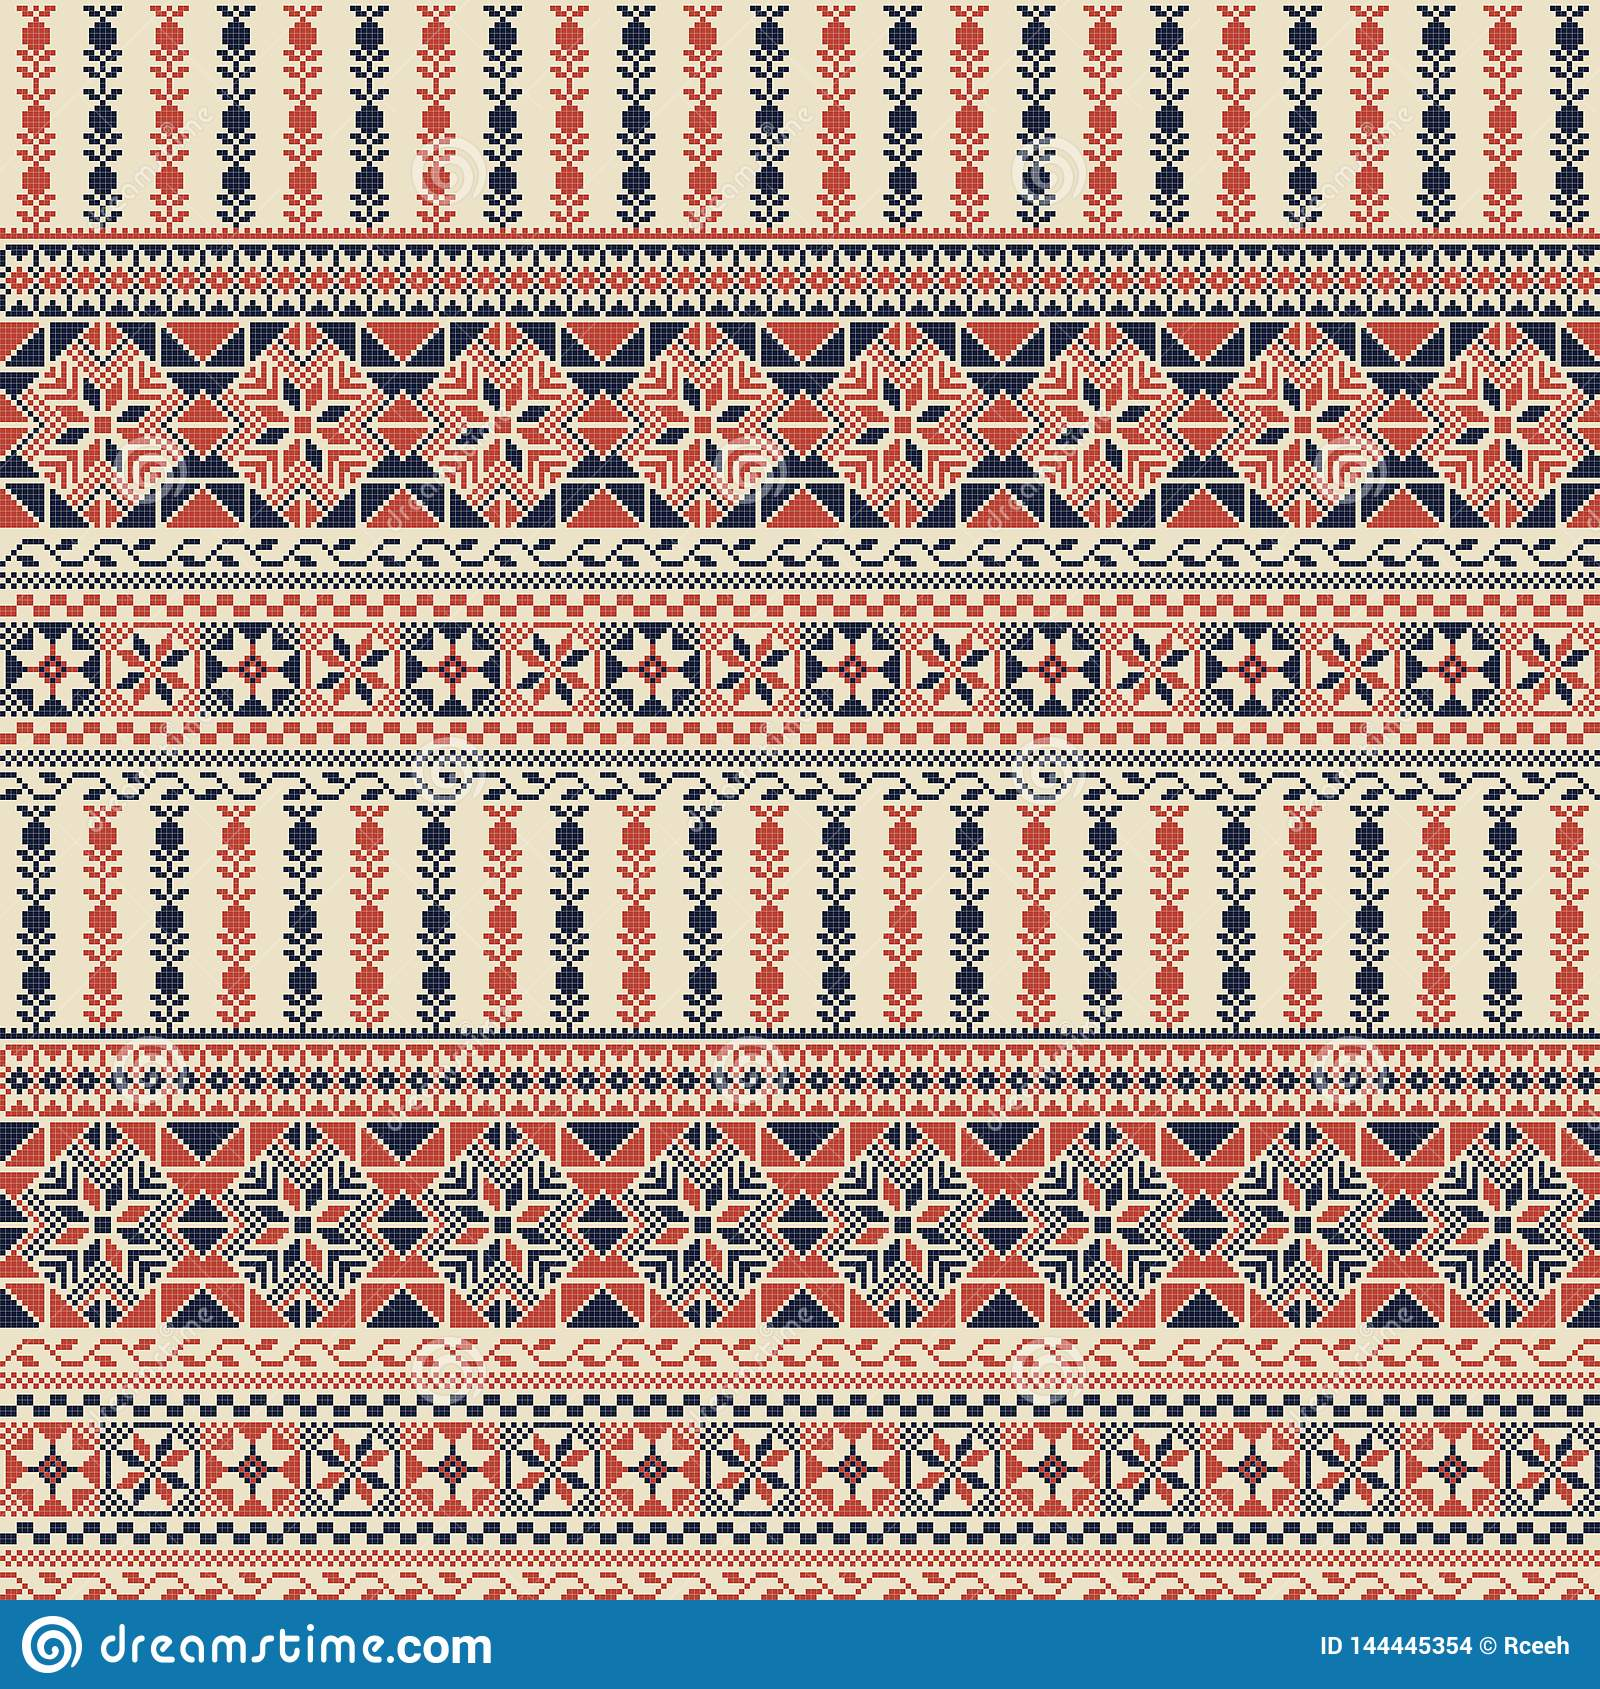 Palestinian embroidery pattern